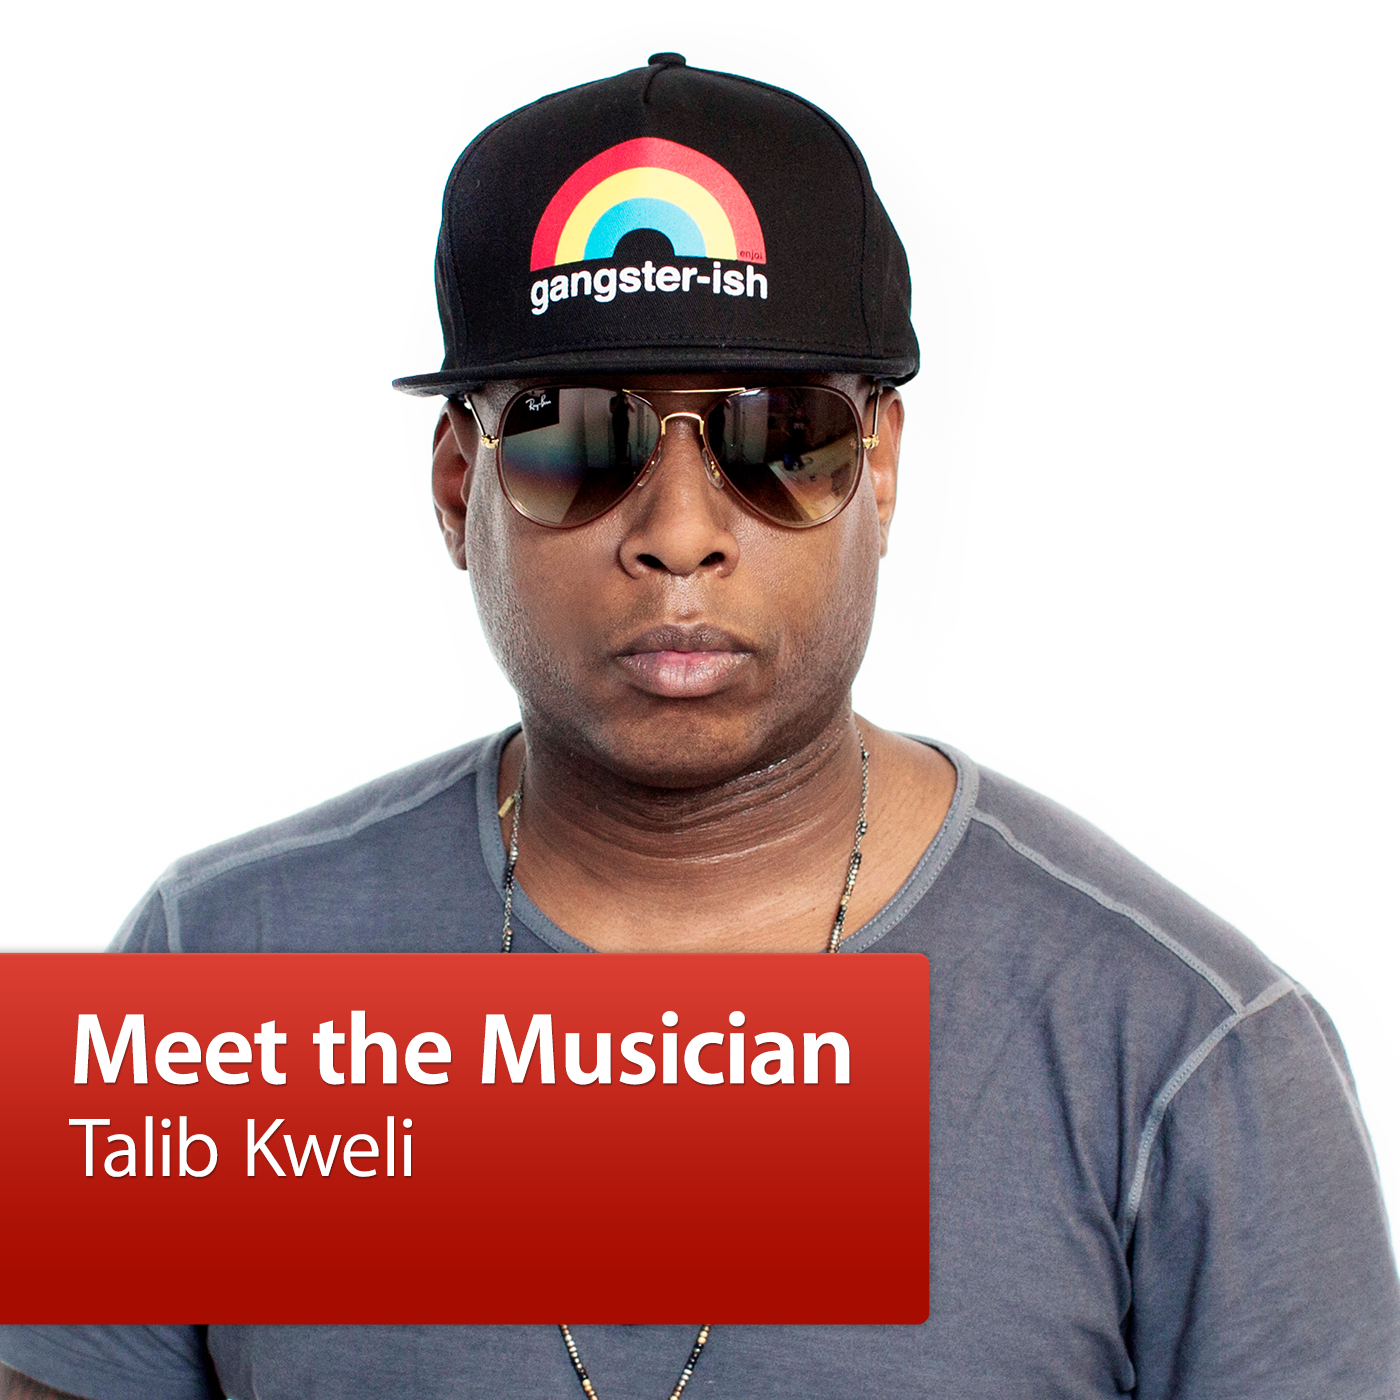 Talib Kweli: Meet the Musician